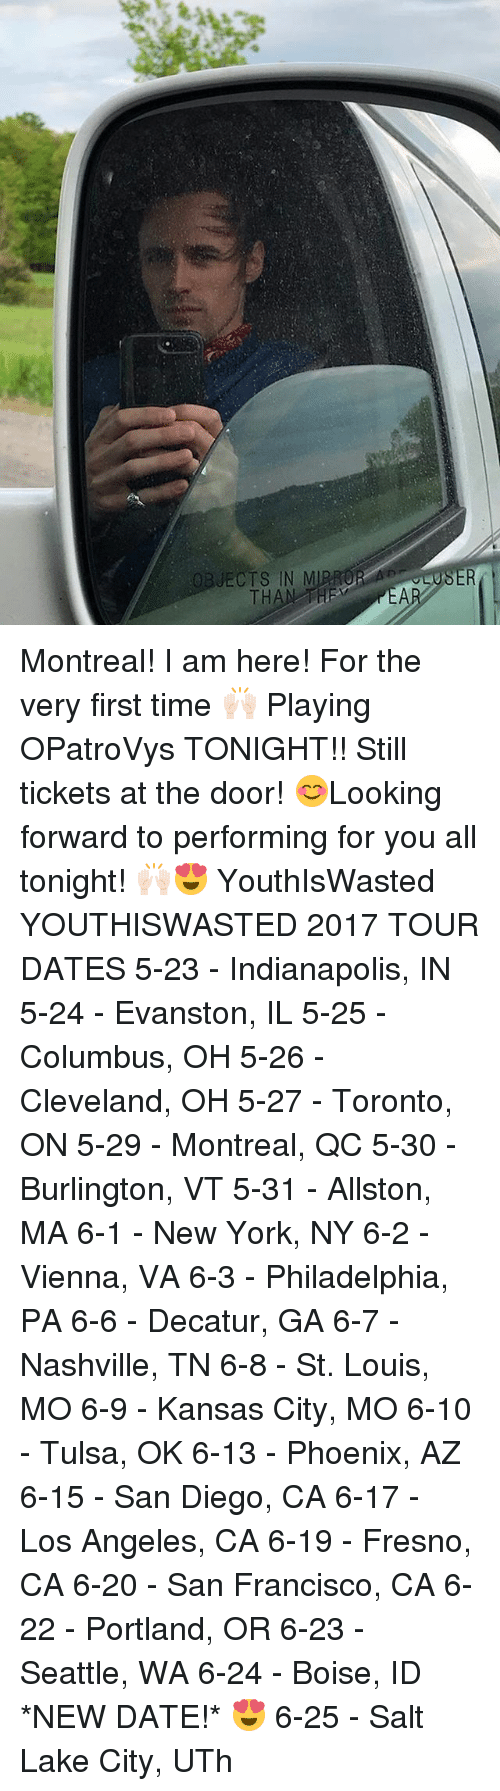 Memes, New York, and Cleveland: OBJECTS IN M  THAN THE Montreal! I am here! For the very first time 🙌🏻 Playing OPatroVys TONIGHT!! Still tickets at the door! 😊Looking forward to performing for you all tonight! 🙌🏻😍 YouthIsWasted YOUTHISWASTED 2017 TOUR DATES 5-23 - Indianapolis, IN 5-24 - Evanston, IL 5-25 - Columbus, OH 5-26 - Cleveland, OH 5-27 - Toronto, ON 5-29 - Montreal, QC 5-30 - Burlington, VT 5-31 - Allston, MA 6-1 - New York, NY 6-2 - Vienna, VA 6-3 - Philadelphia, PA 6-6 - Decatur, GA 6-7 - Nashville, TN 6-8 - St. Louis, MO 6-9 - Kansas City, MO 6-10 - Tulsa, OK 6-13 - Phoenix, AZ 6-15 - San Diego, CA 6-17 - Los Angeles, CA 6-19 - Fresno, CA 6-20 - San Francisco, CA 6-22 - Portland, OR 6-23 - Seattle, WA 6-24 - Boise, ID *NEW DATE!* 😍 6-25 - Salt Lake City, UTh